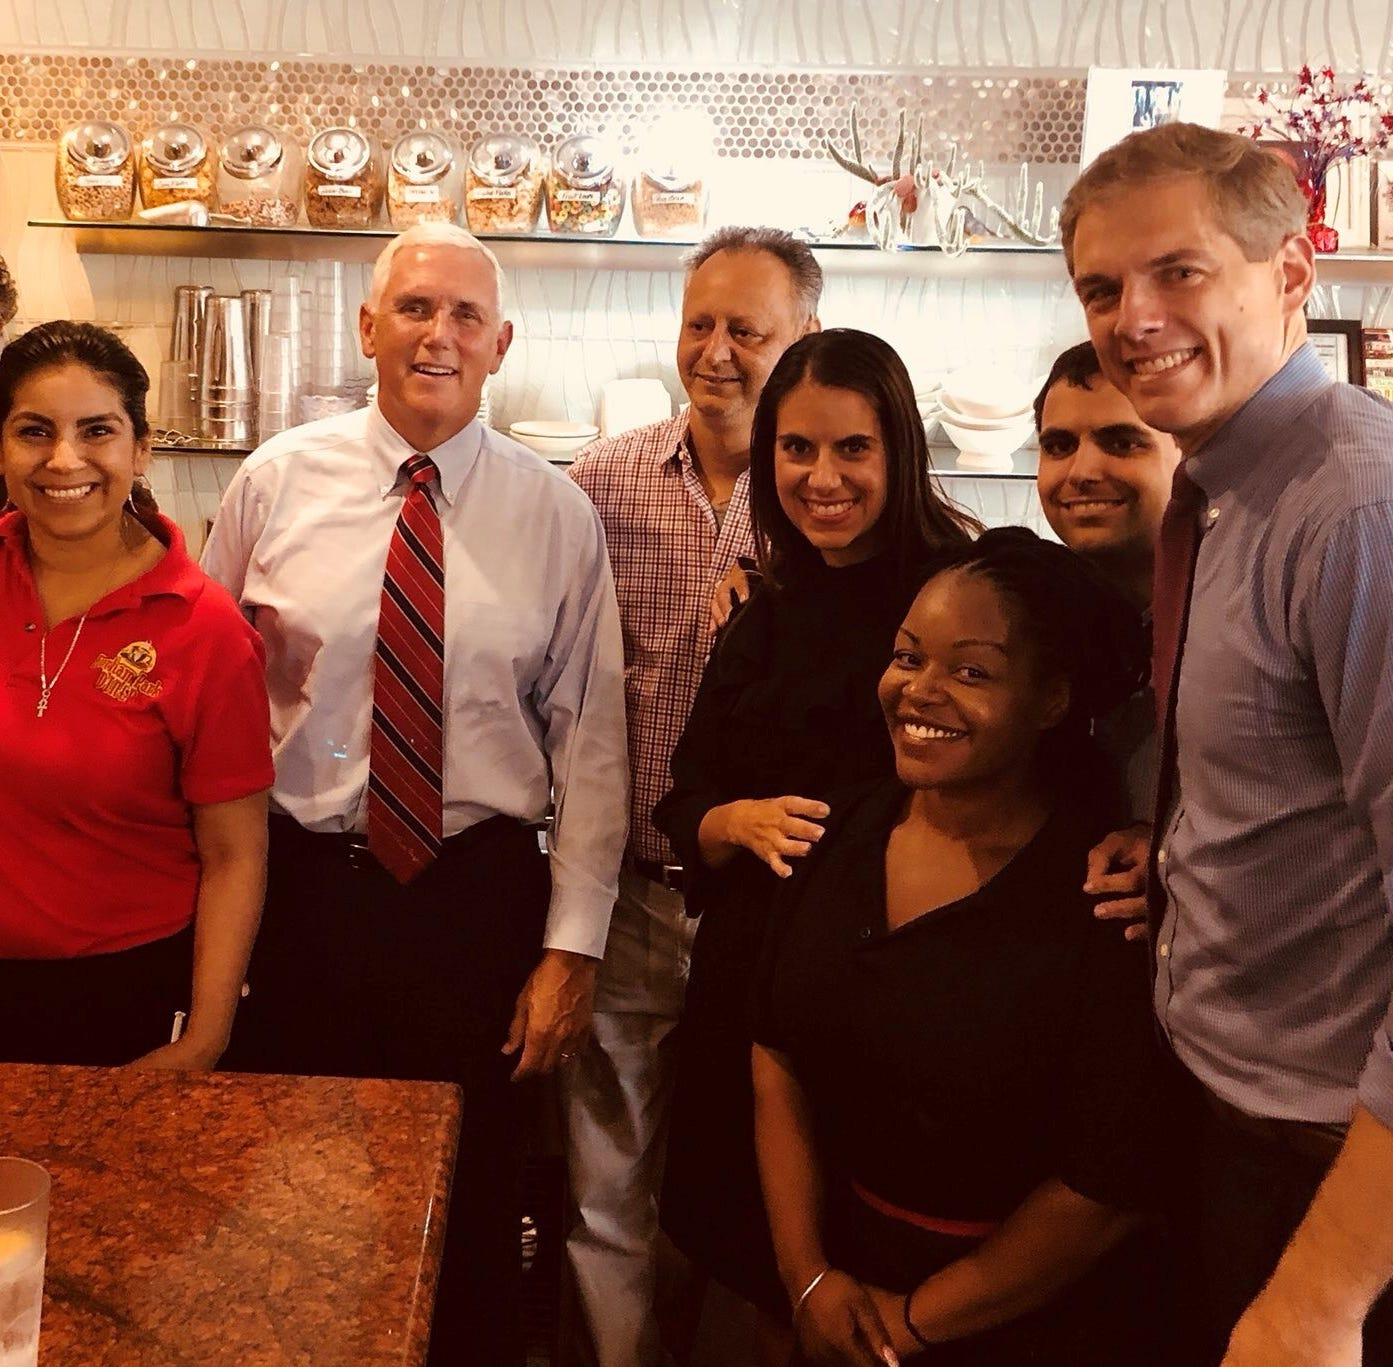 New Jersey diner taken by surprise by Secret Service, Vice President Pence's visit